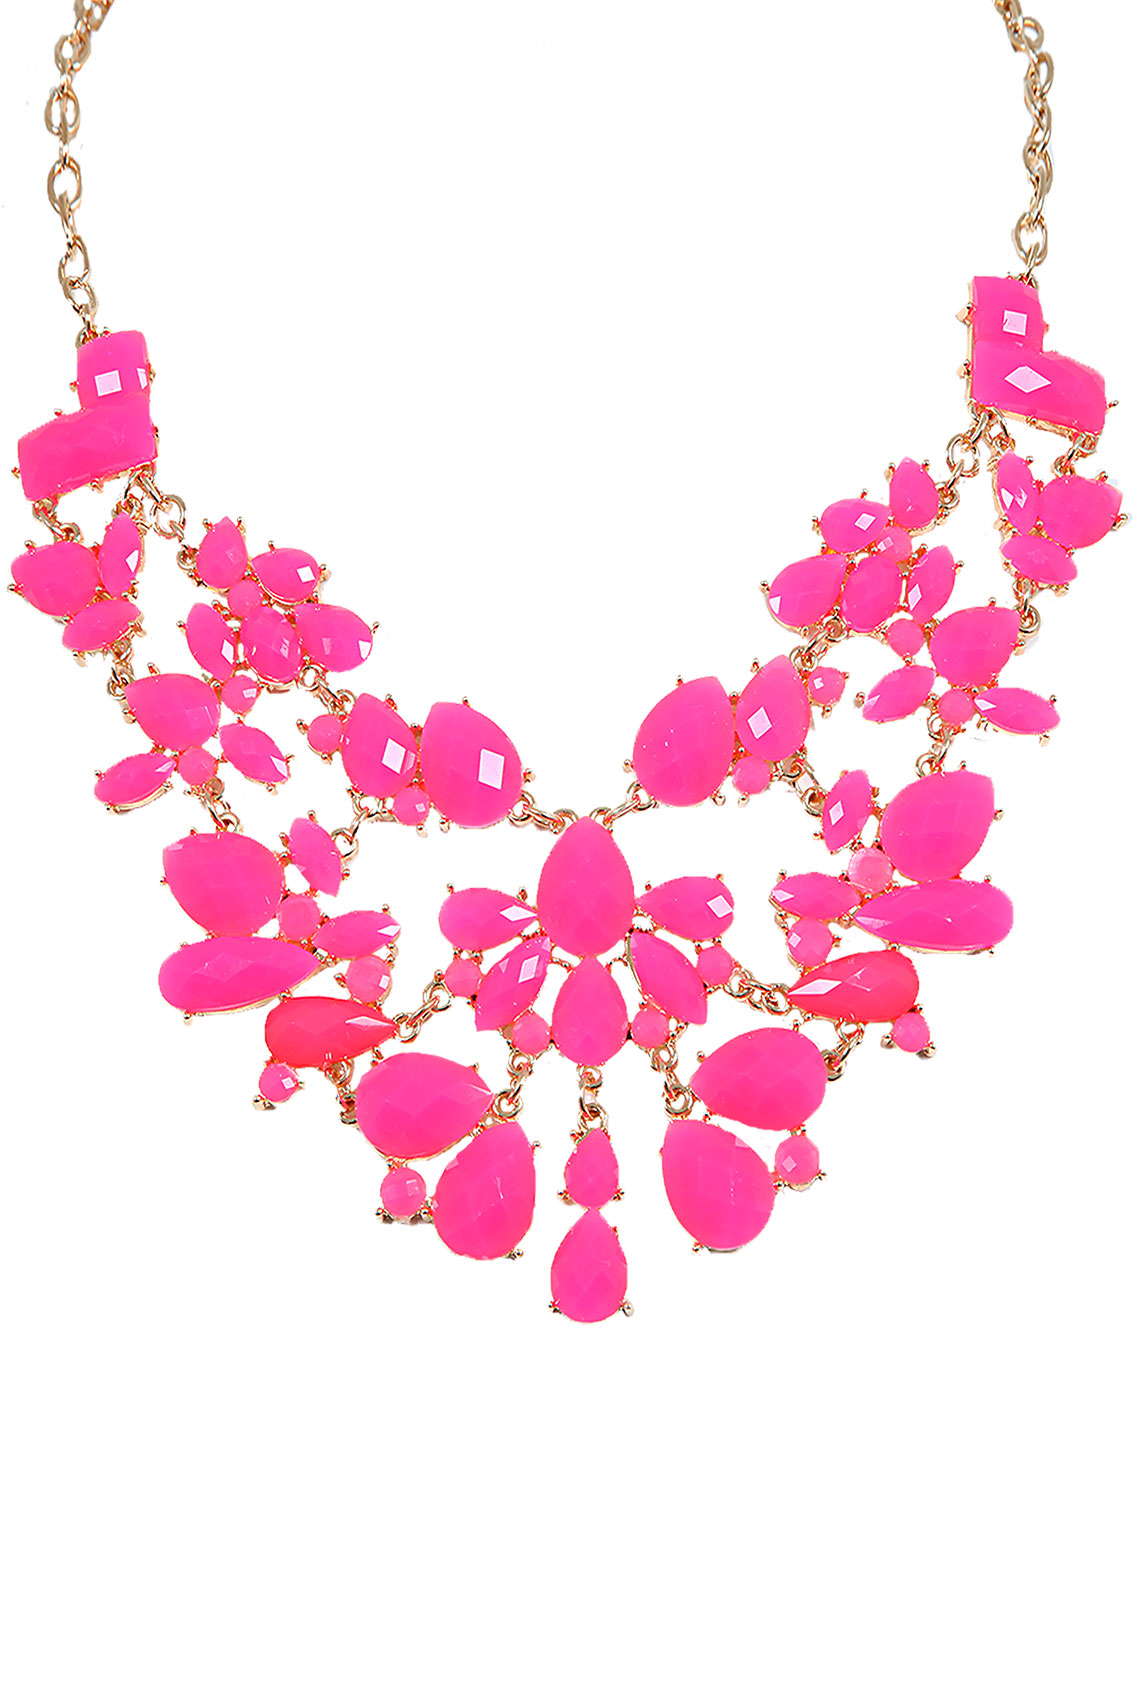 flower anemone gift products mica il gold women chfs necklace pink for peet fullxfull bib print nature floral statement